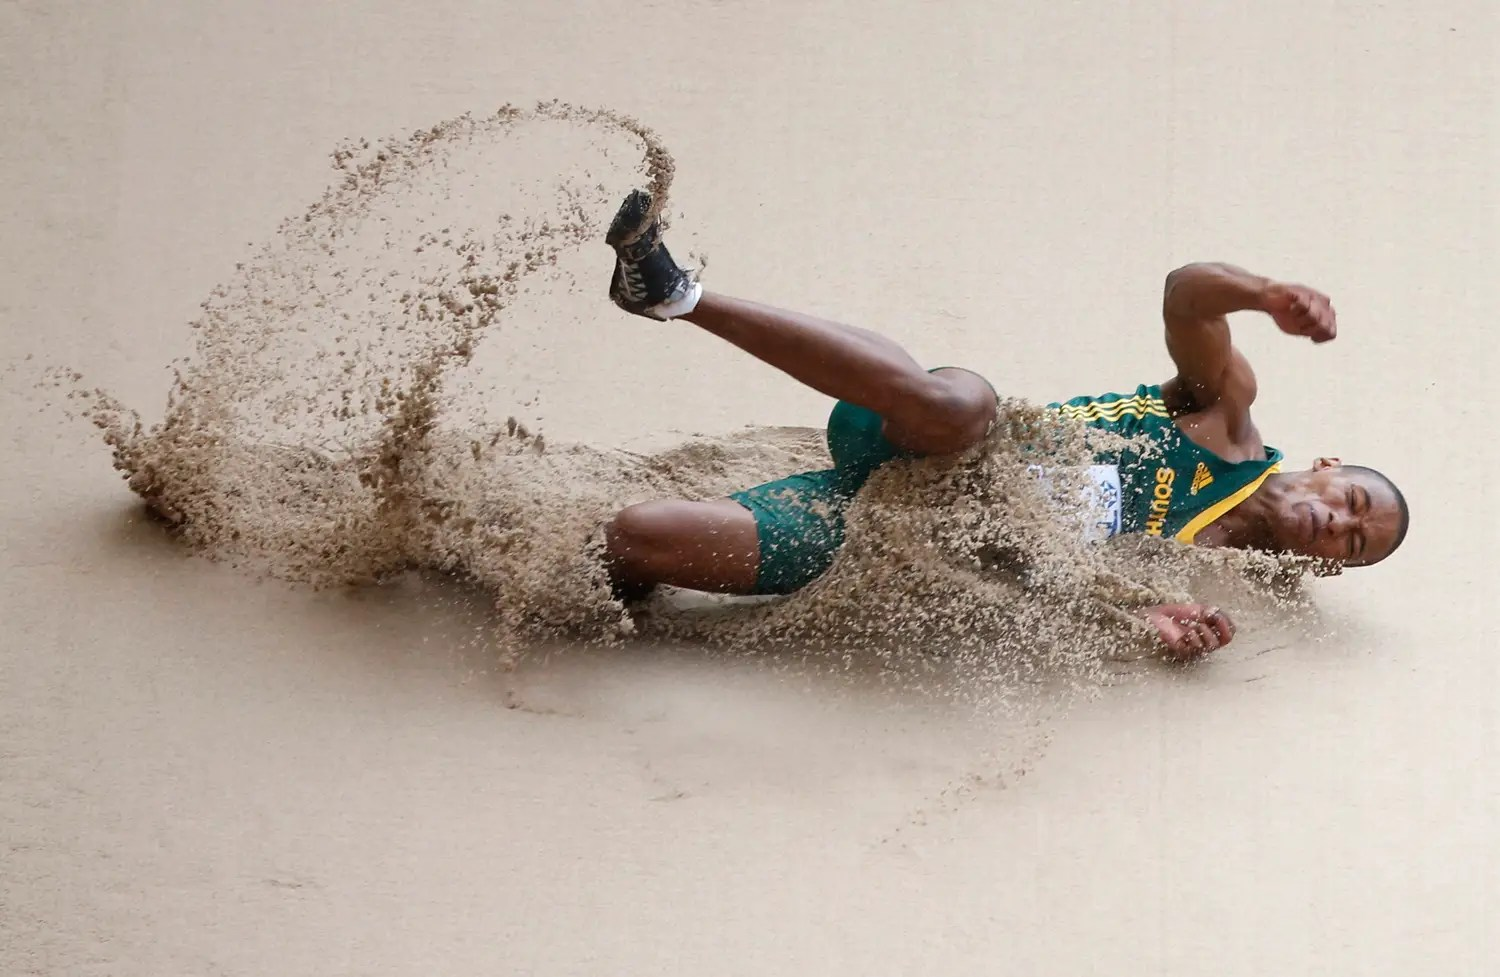 South African long jumper Rushwal Samaai lands in the sand.